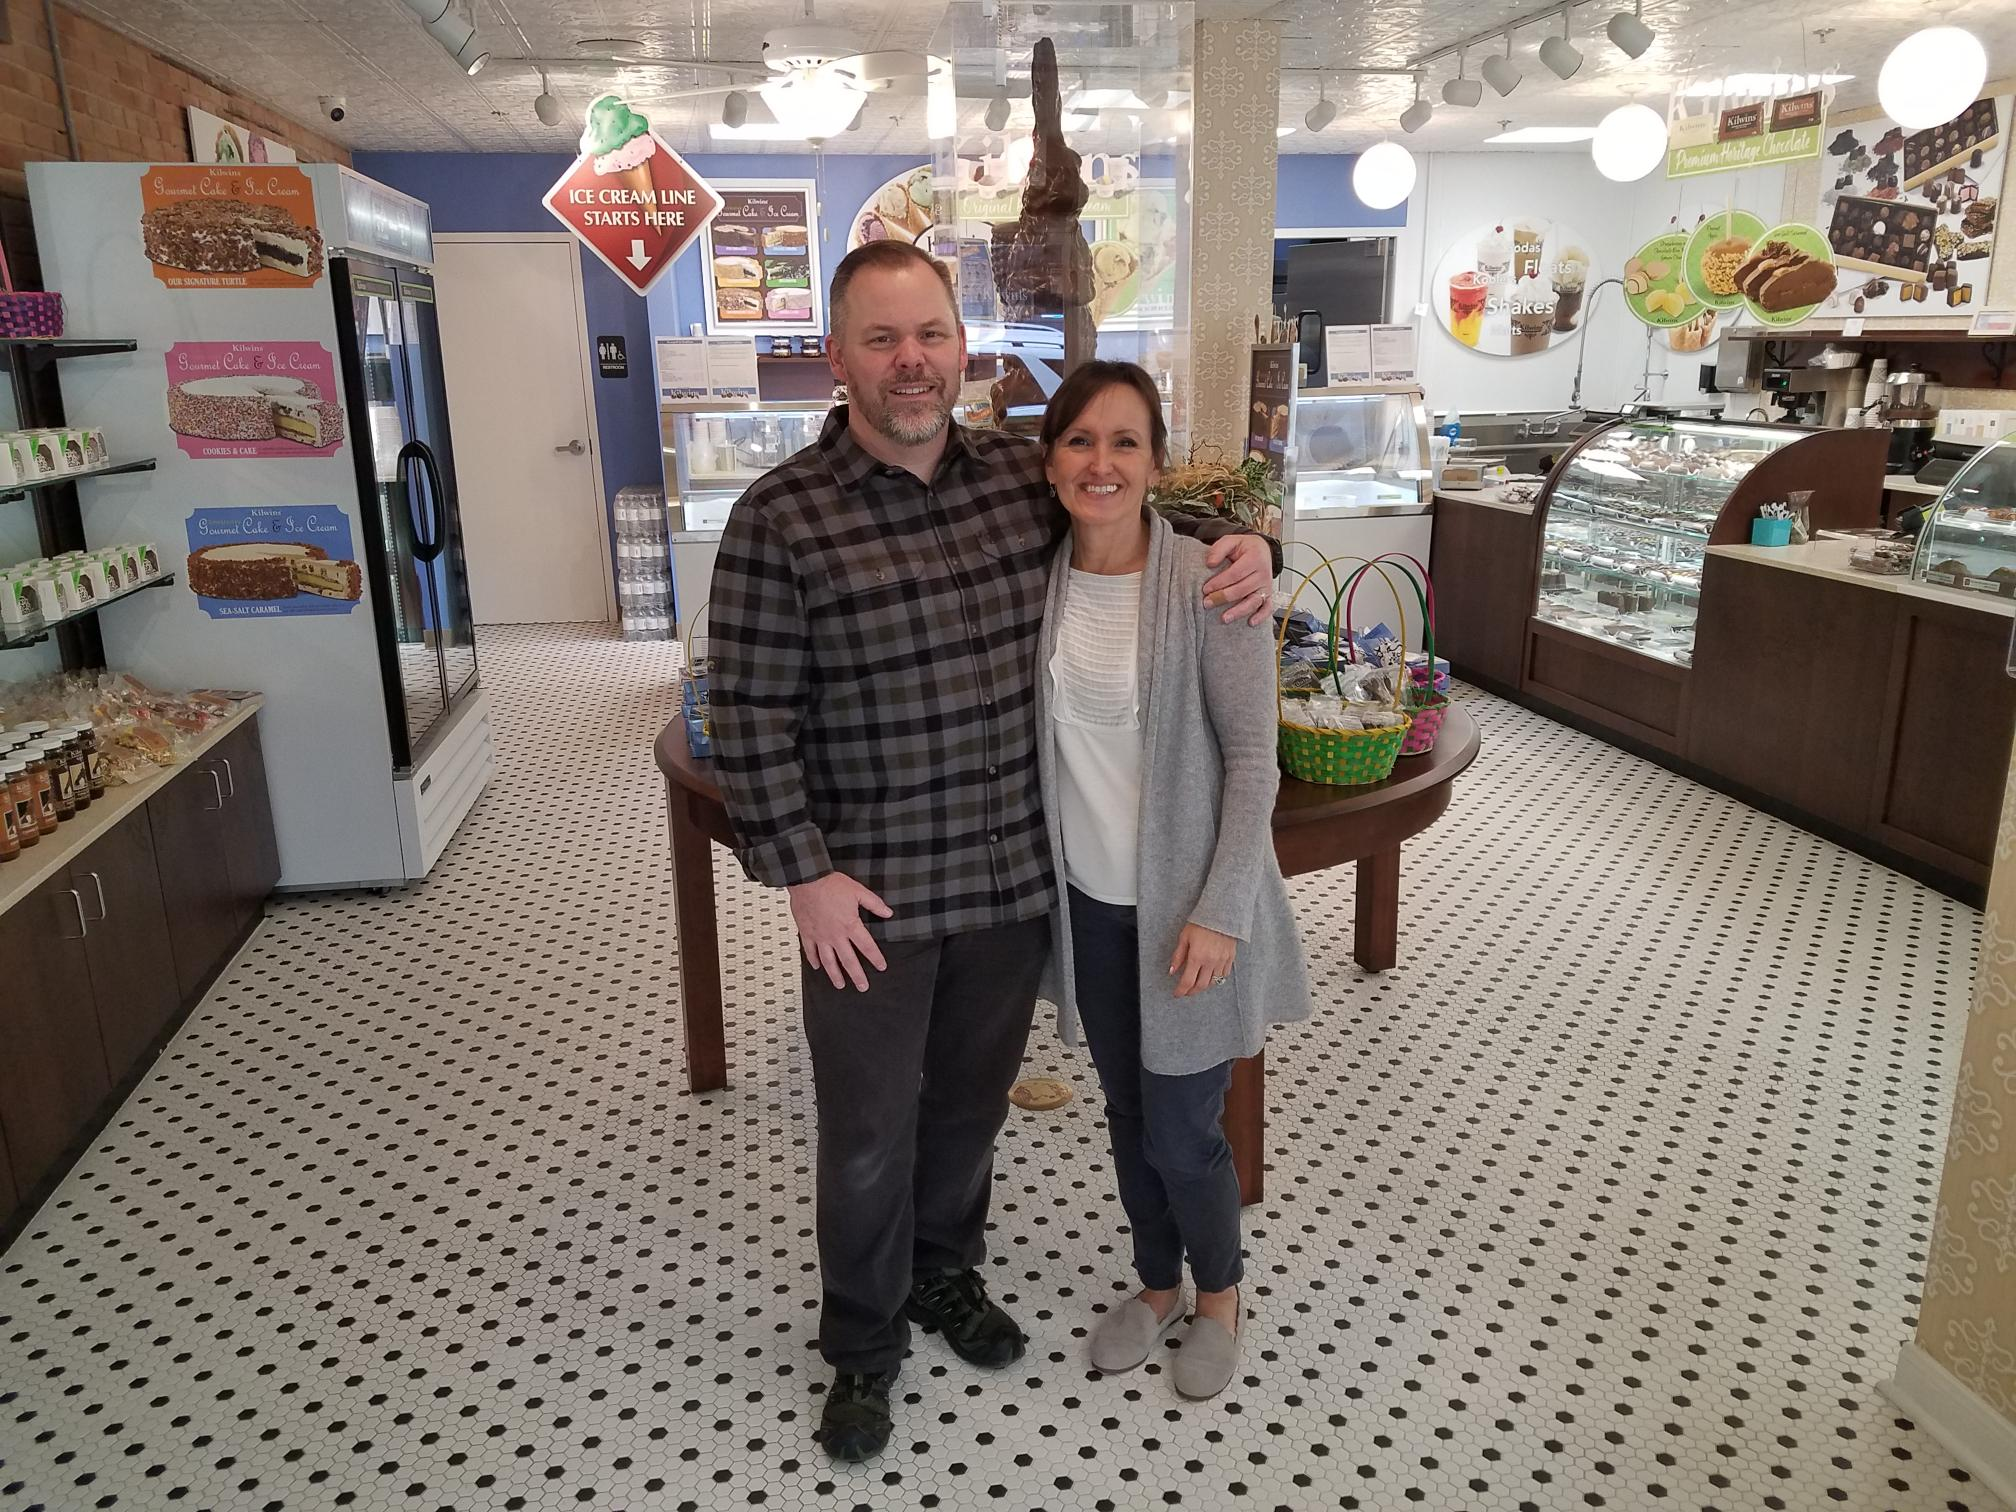 A picture of the owners inside the Grapevine store